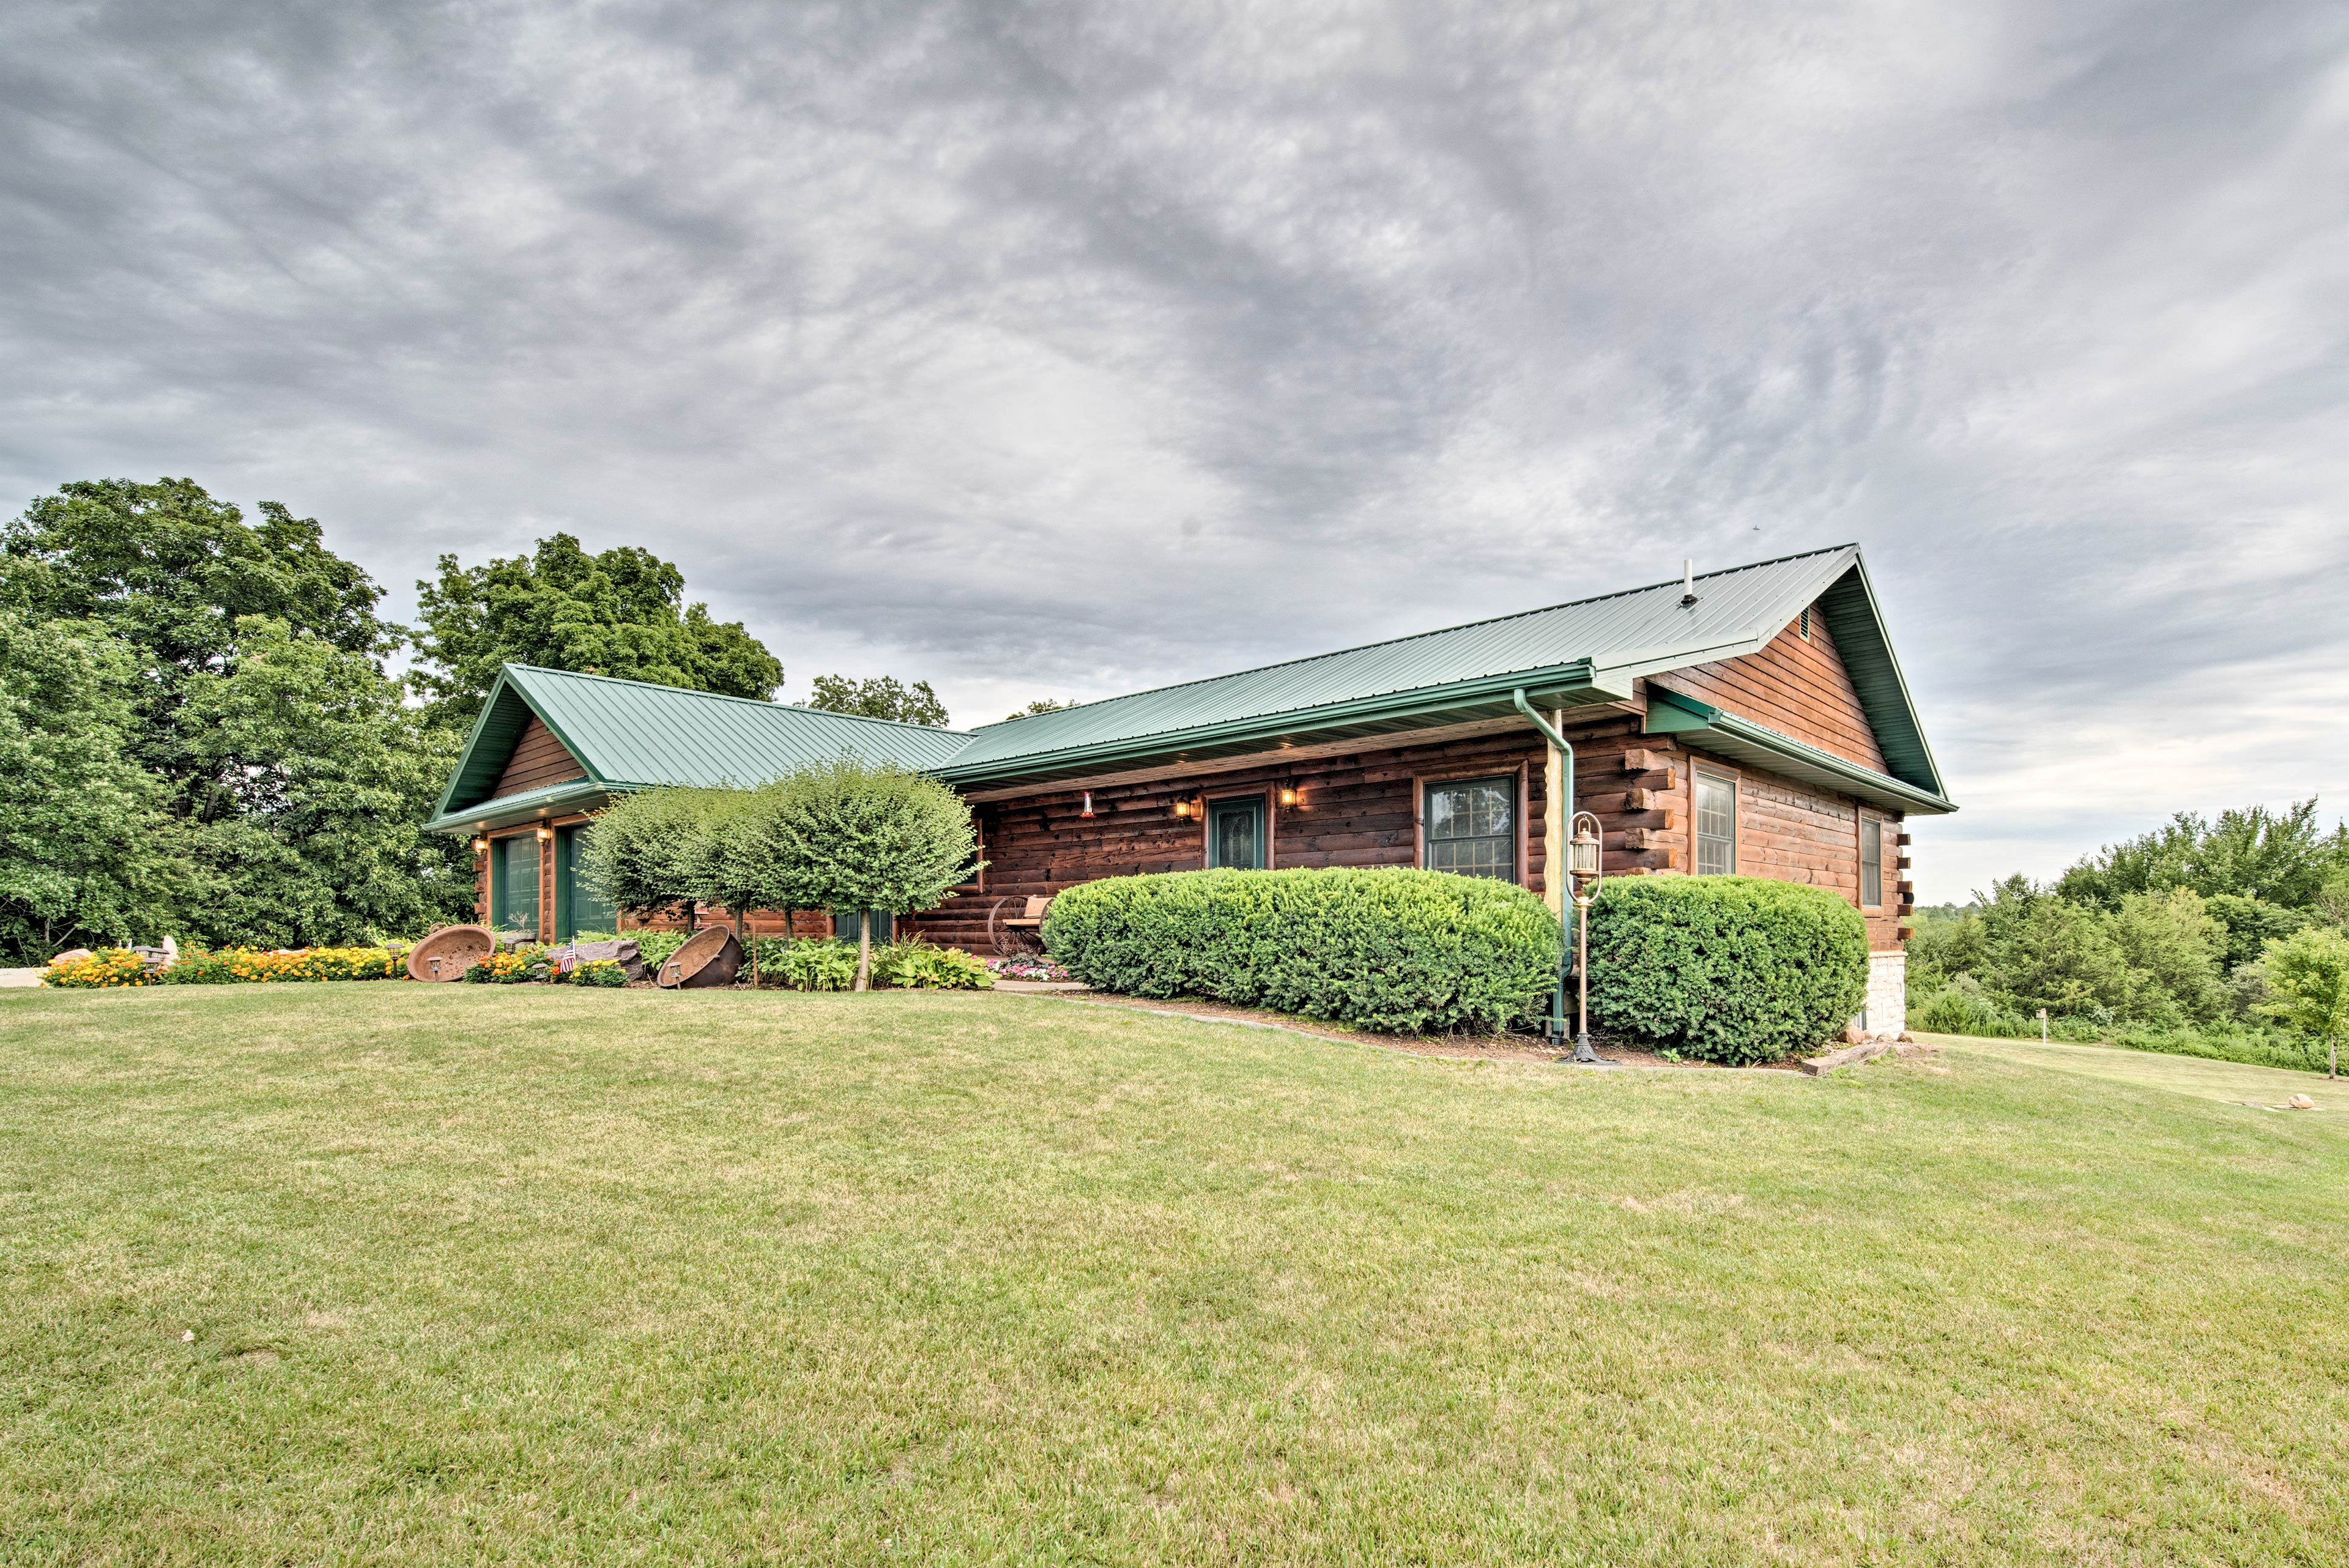 The home is surrounded by lush grass and soothing lake views.